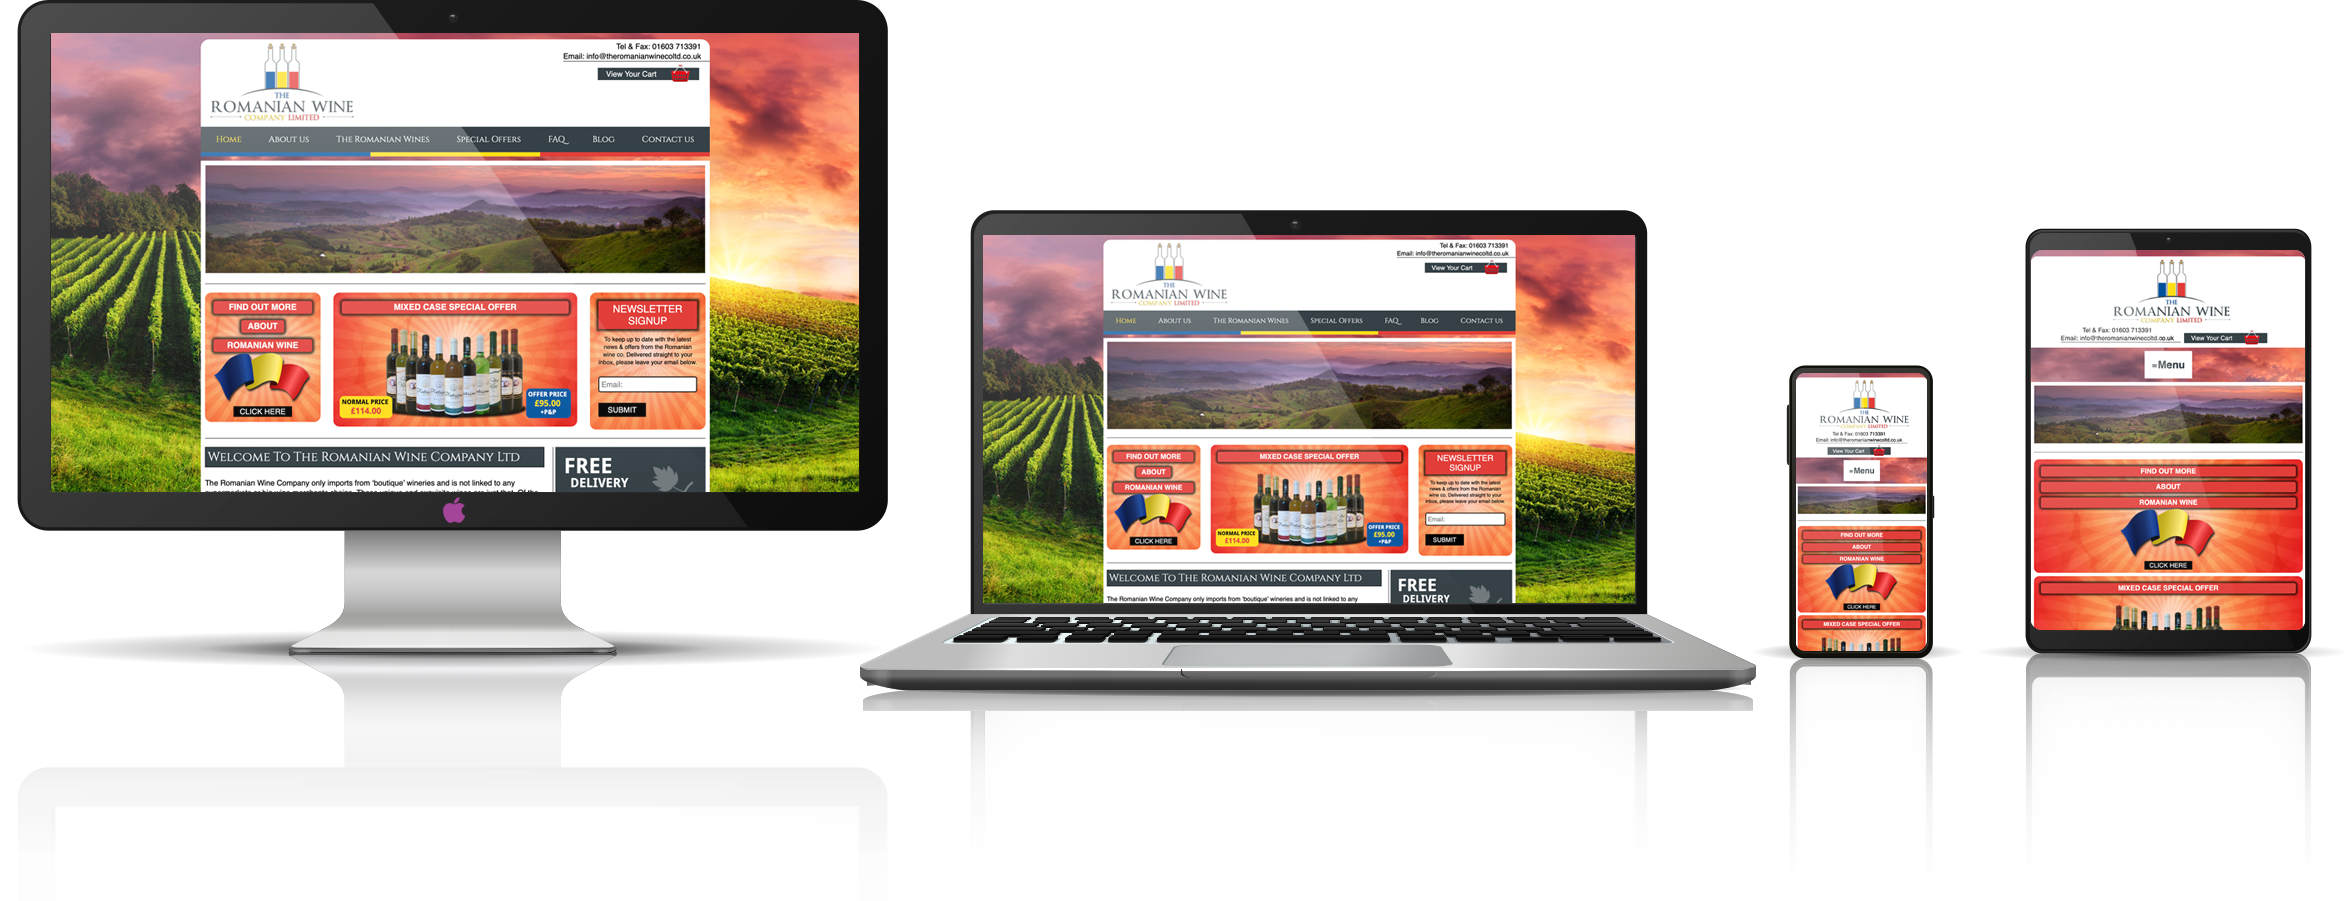 The Romanian Wine Company Limited fully responsive mock-up images showing desktop, laptop, tablet, and mobile phone devices.